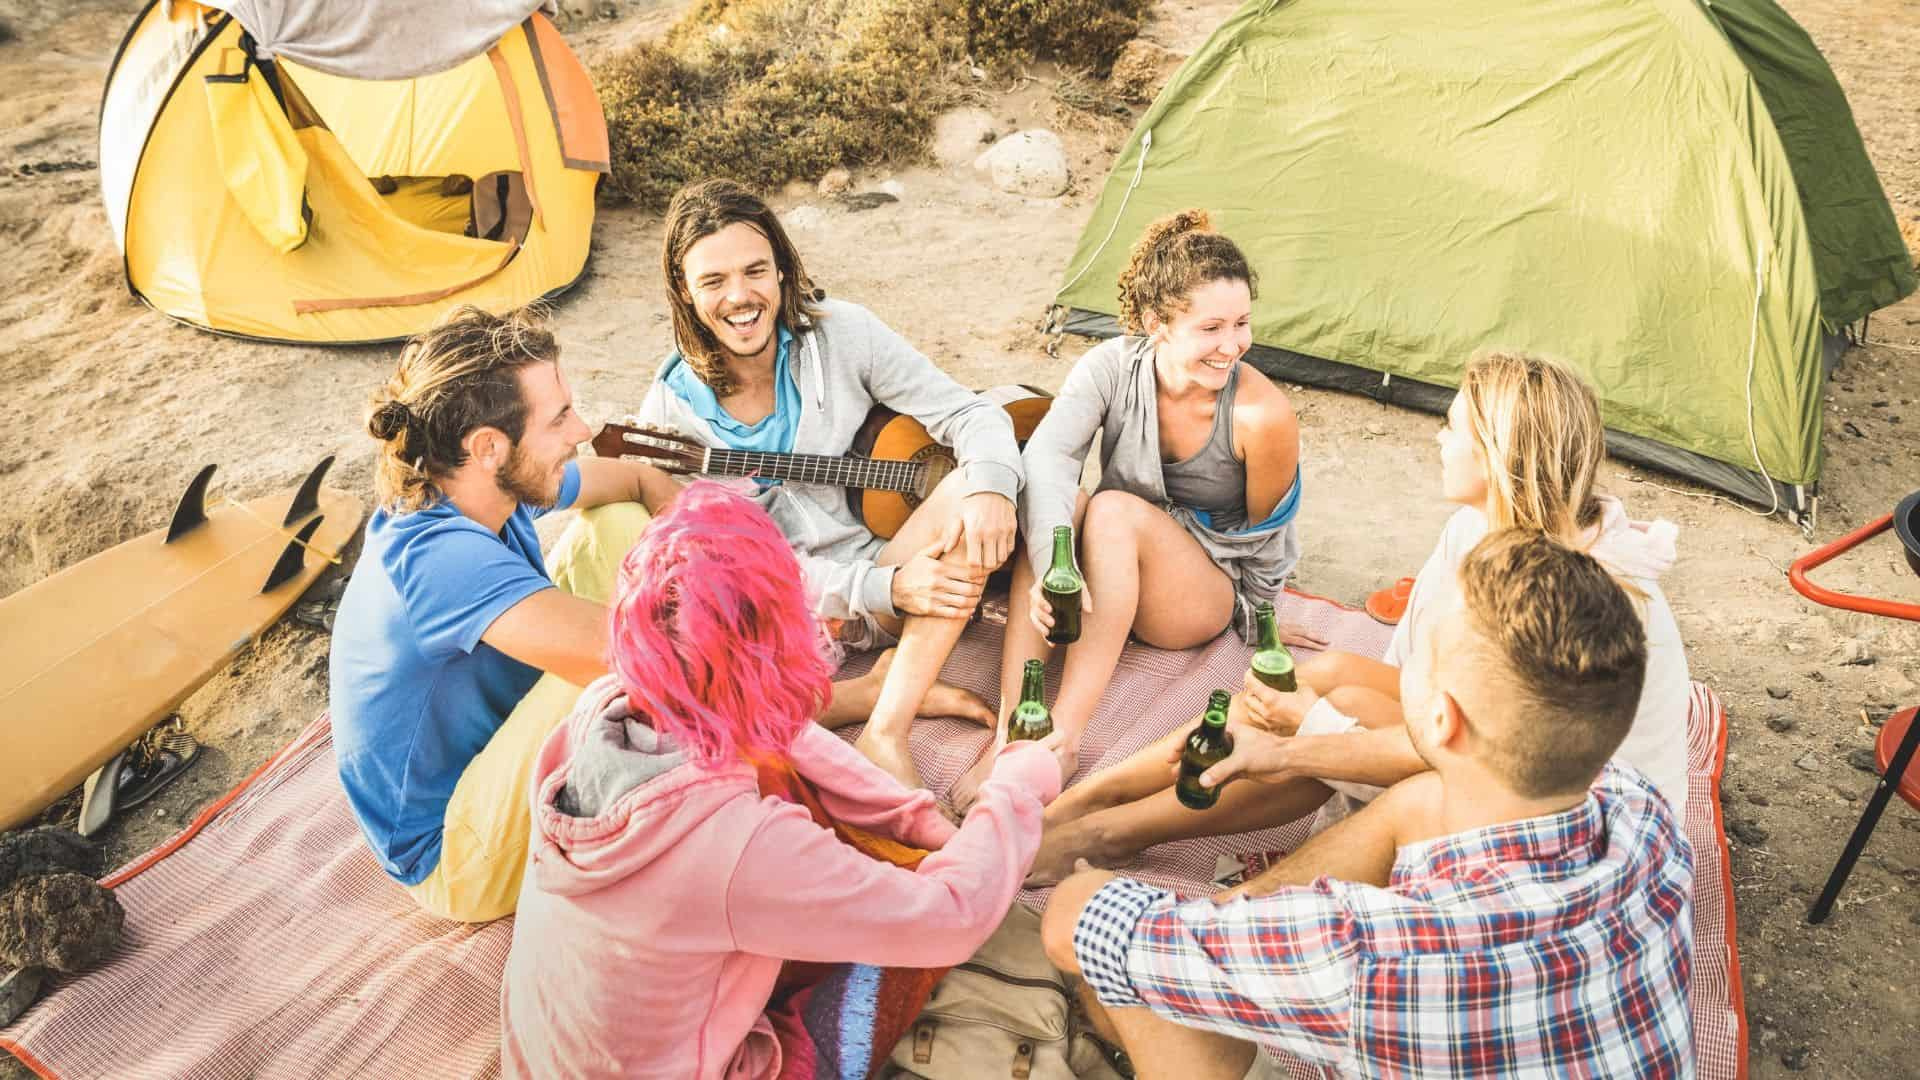 5 Reasons to Try Beach Camping with Your Whole Family